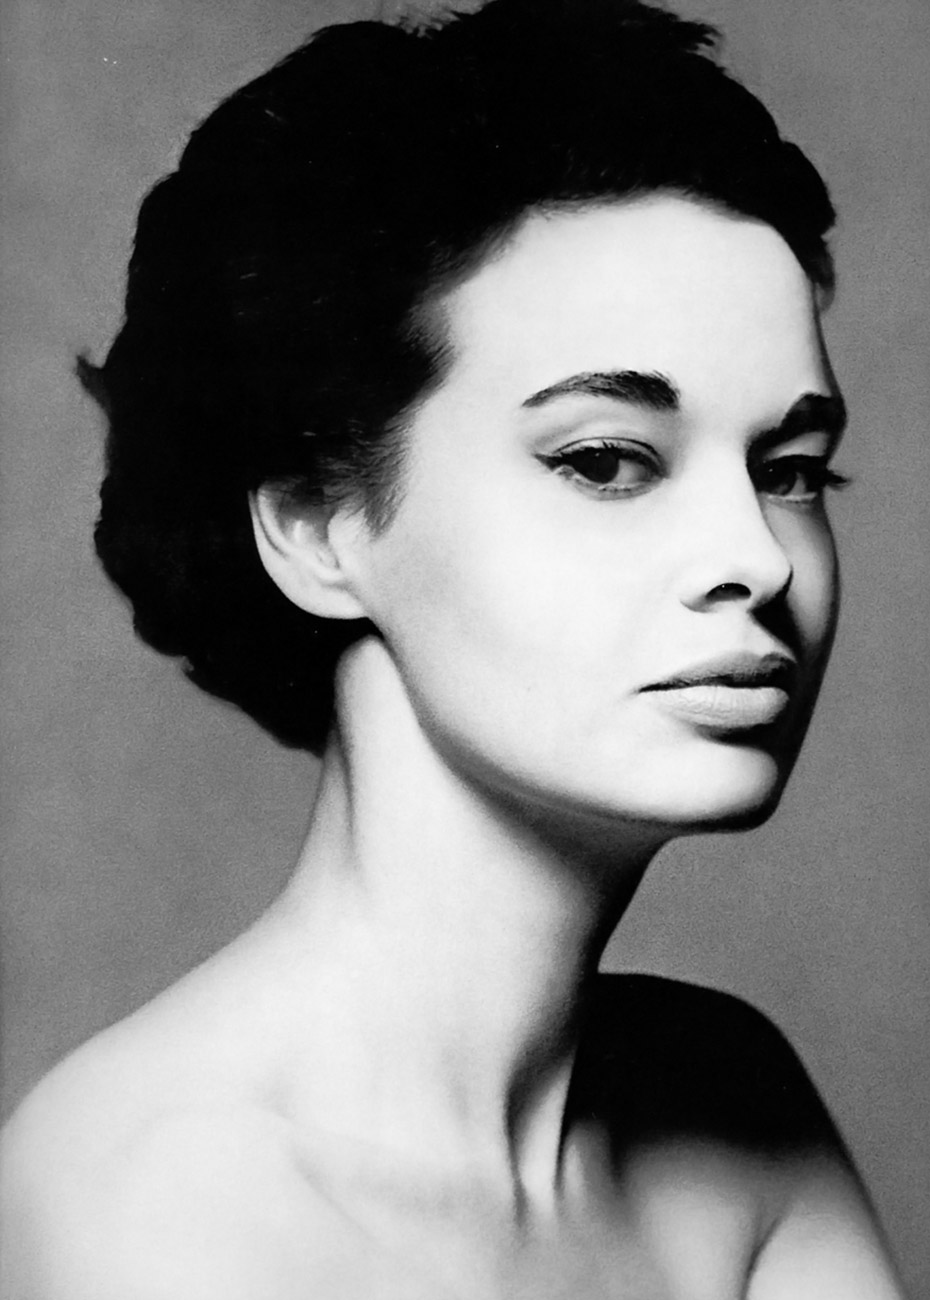 gloria-vanderbilt-1953-photo-richard-avedon